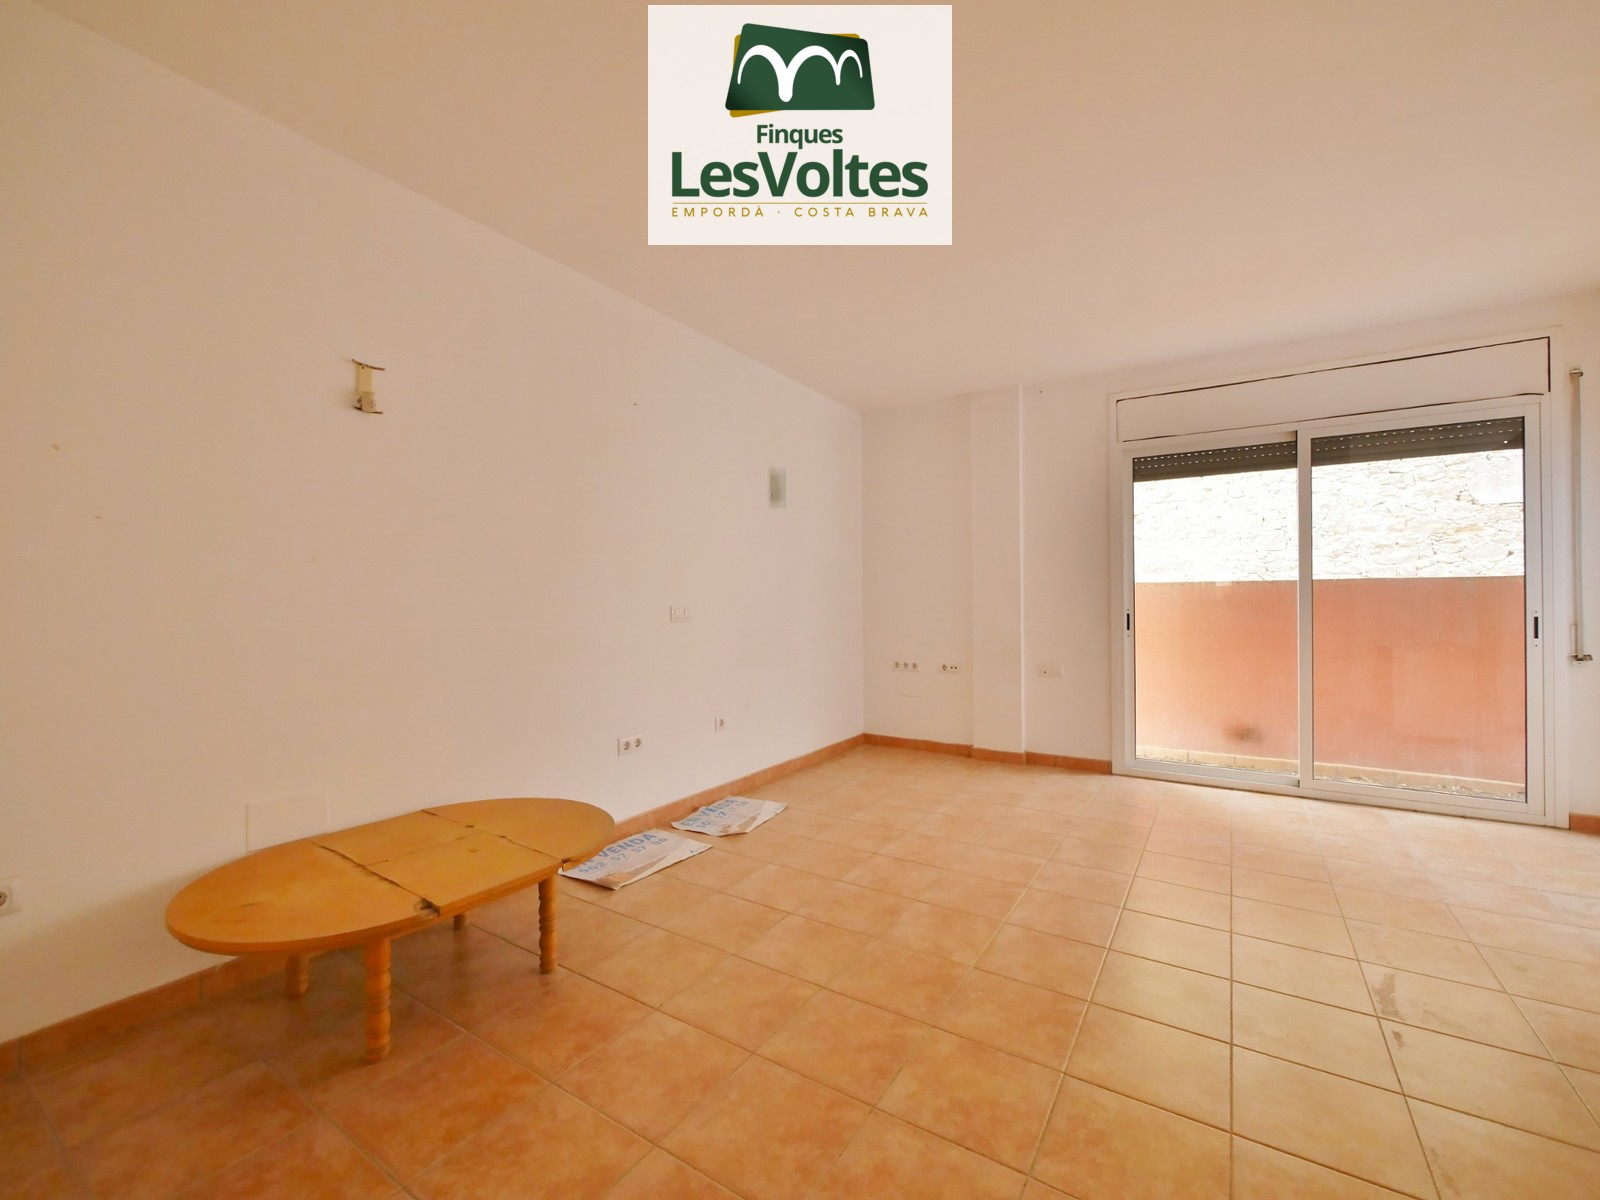 FLAT OF 68 M2 WITH 2 BEDROOMS, TERRACE, PARKING SPACE AND STOREROOM FOR SALE IN VERGES.